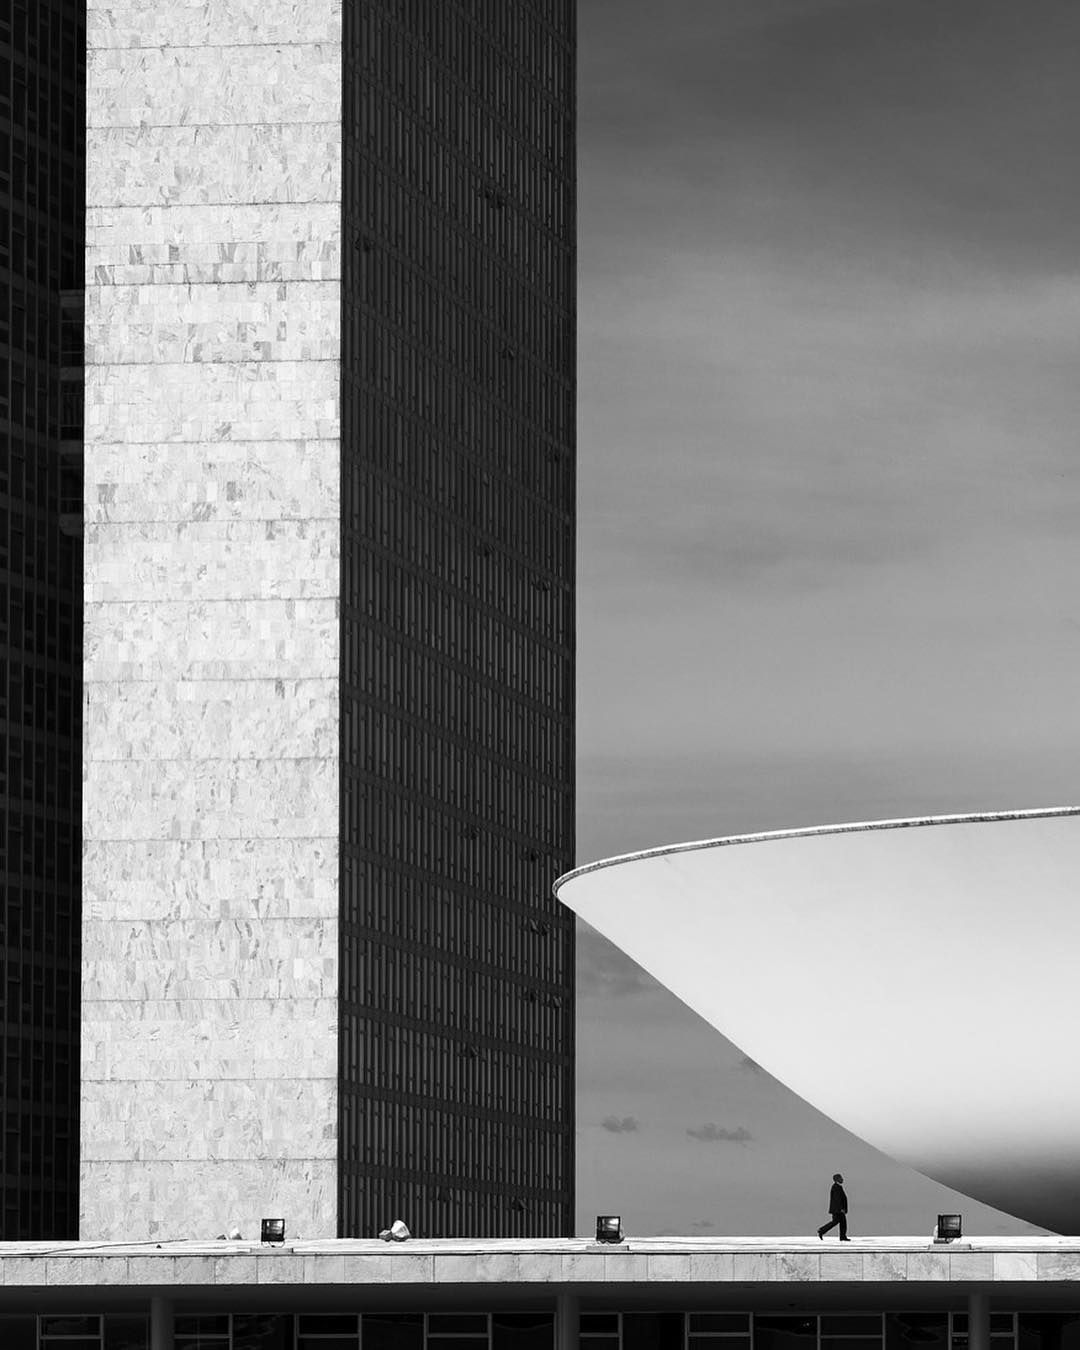 """4,100 Likes, 22 Comments - ARCHITECTURE HUNTER (@architecture_hunter) on Instagram: """"#architecture_hunter  I like this shot by Haruo Mikami  Oscar Niemeyer  Via: @archdailybr's website"""""""